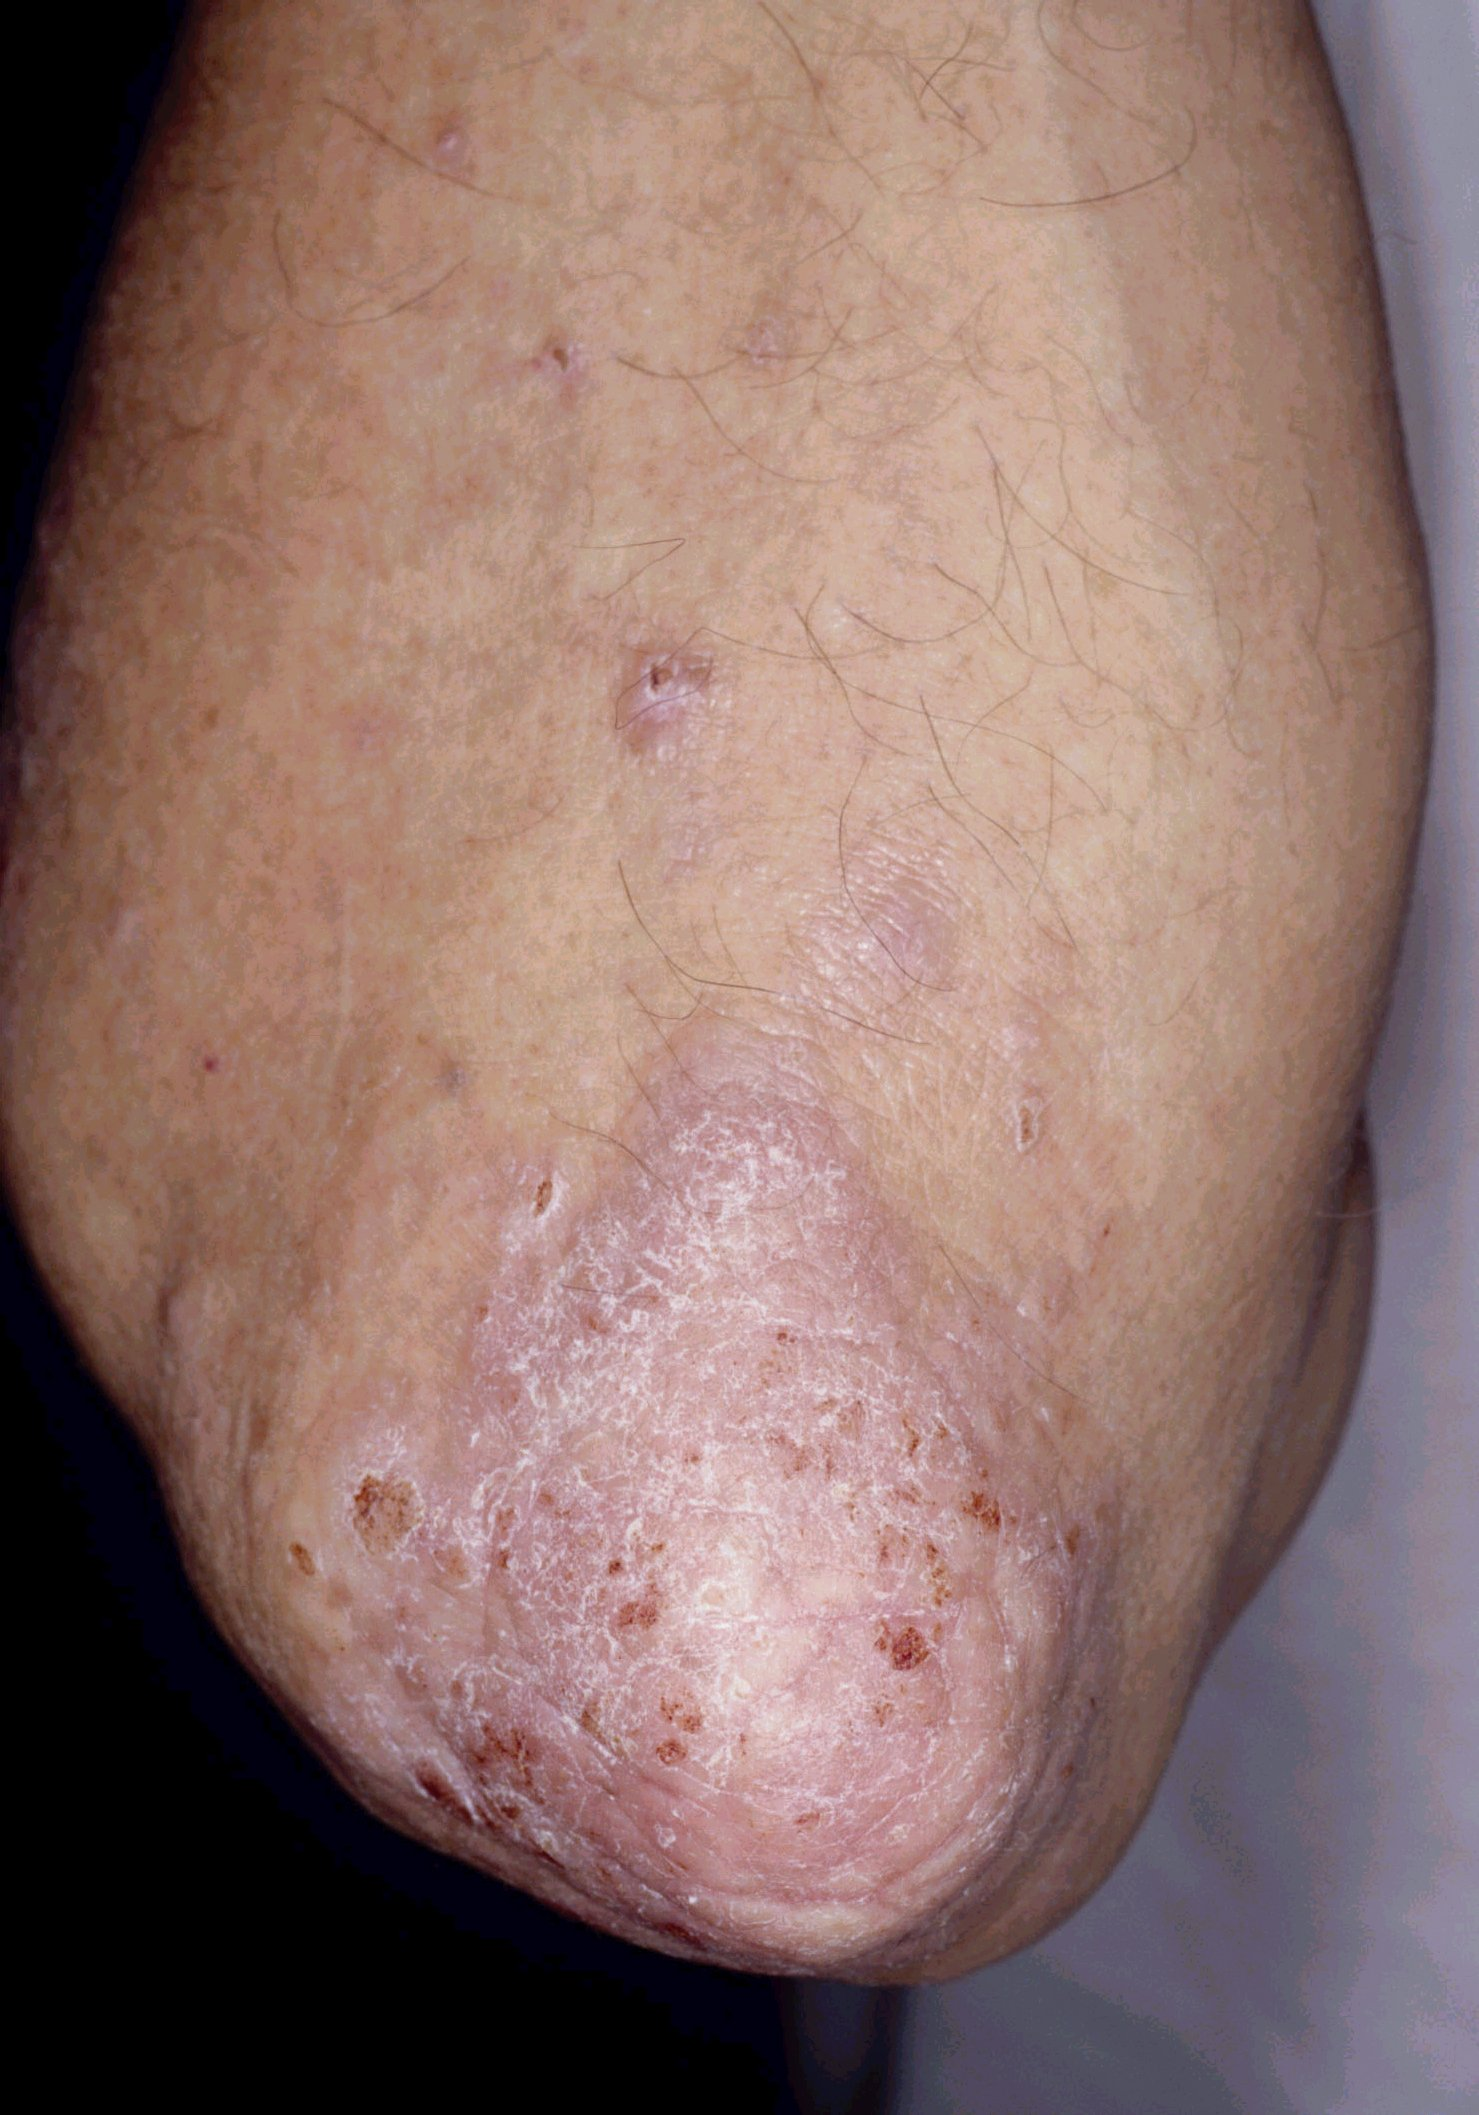 Plaque psoriasis on the elbow. Image courtesy of Hon Pak, MD.